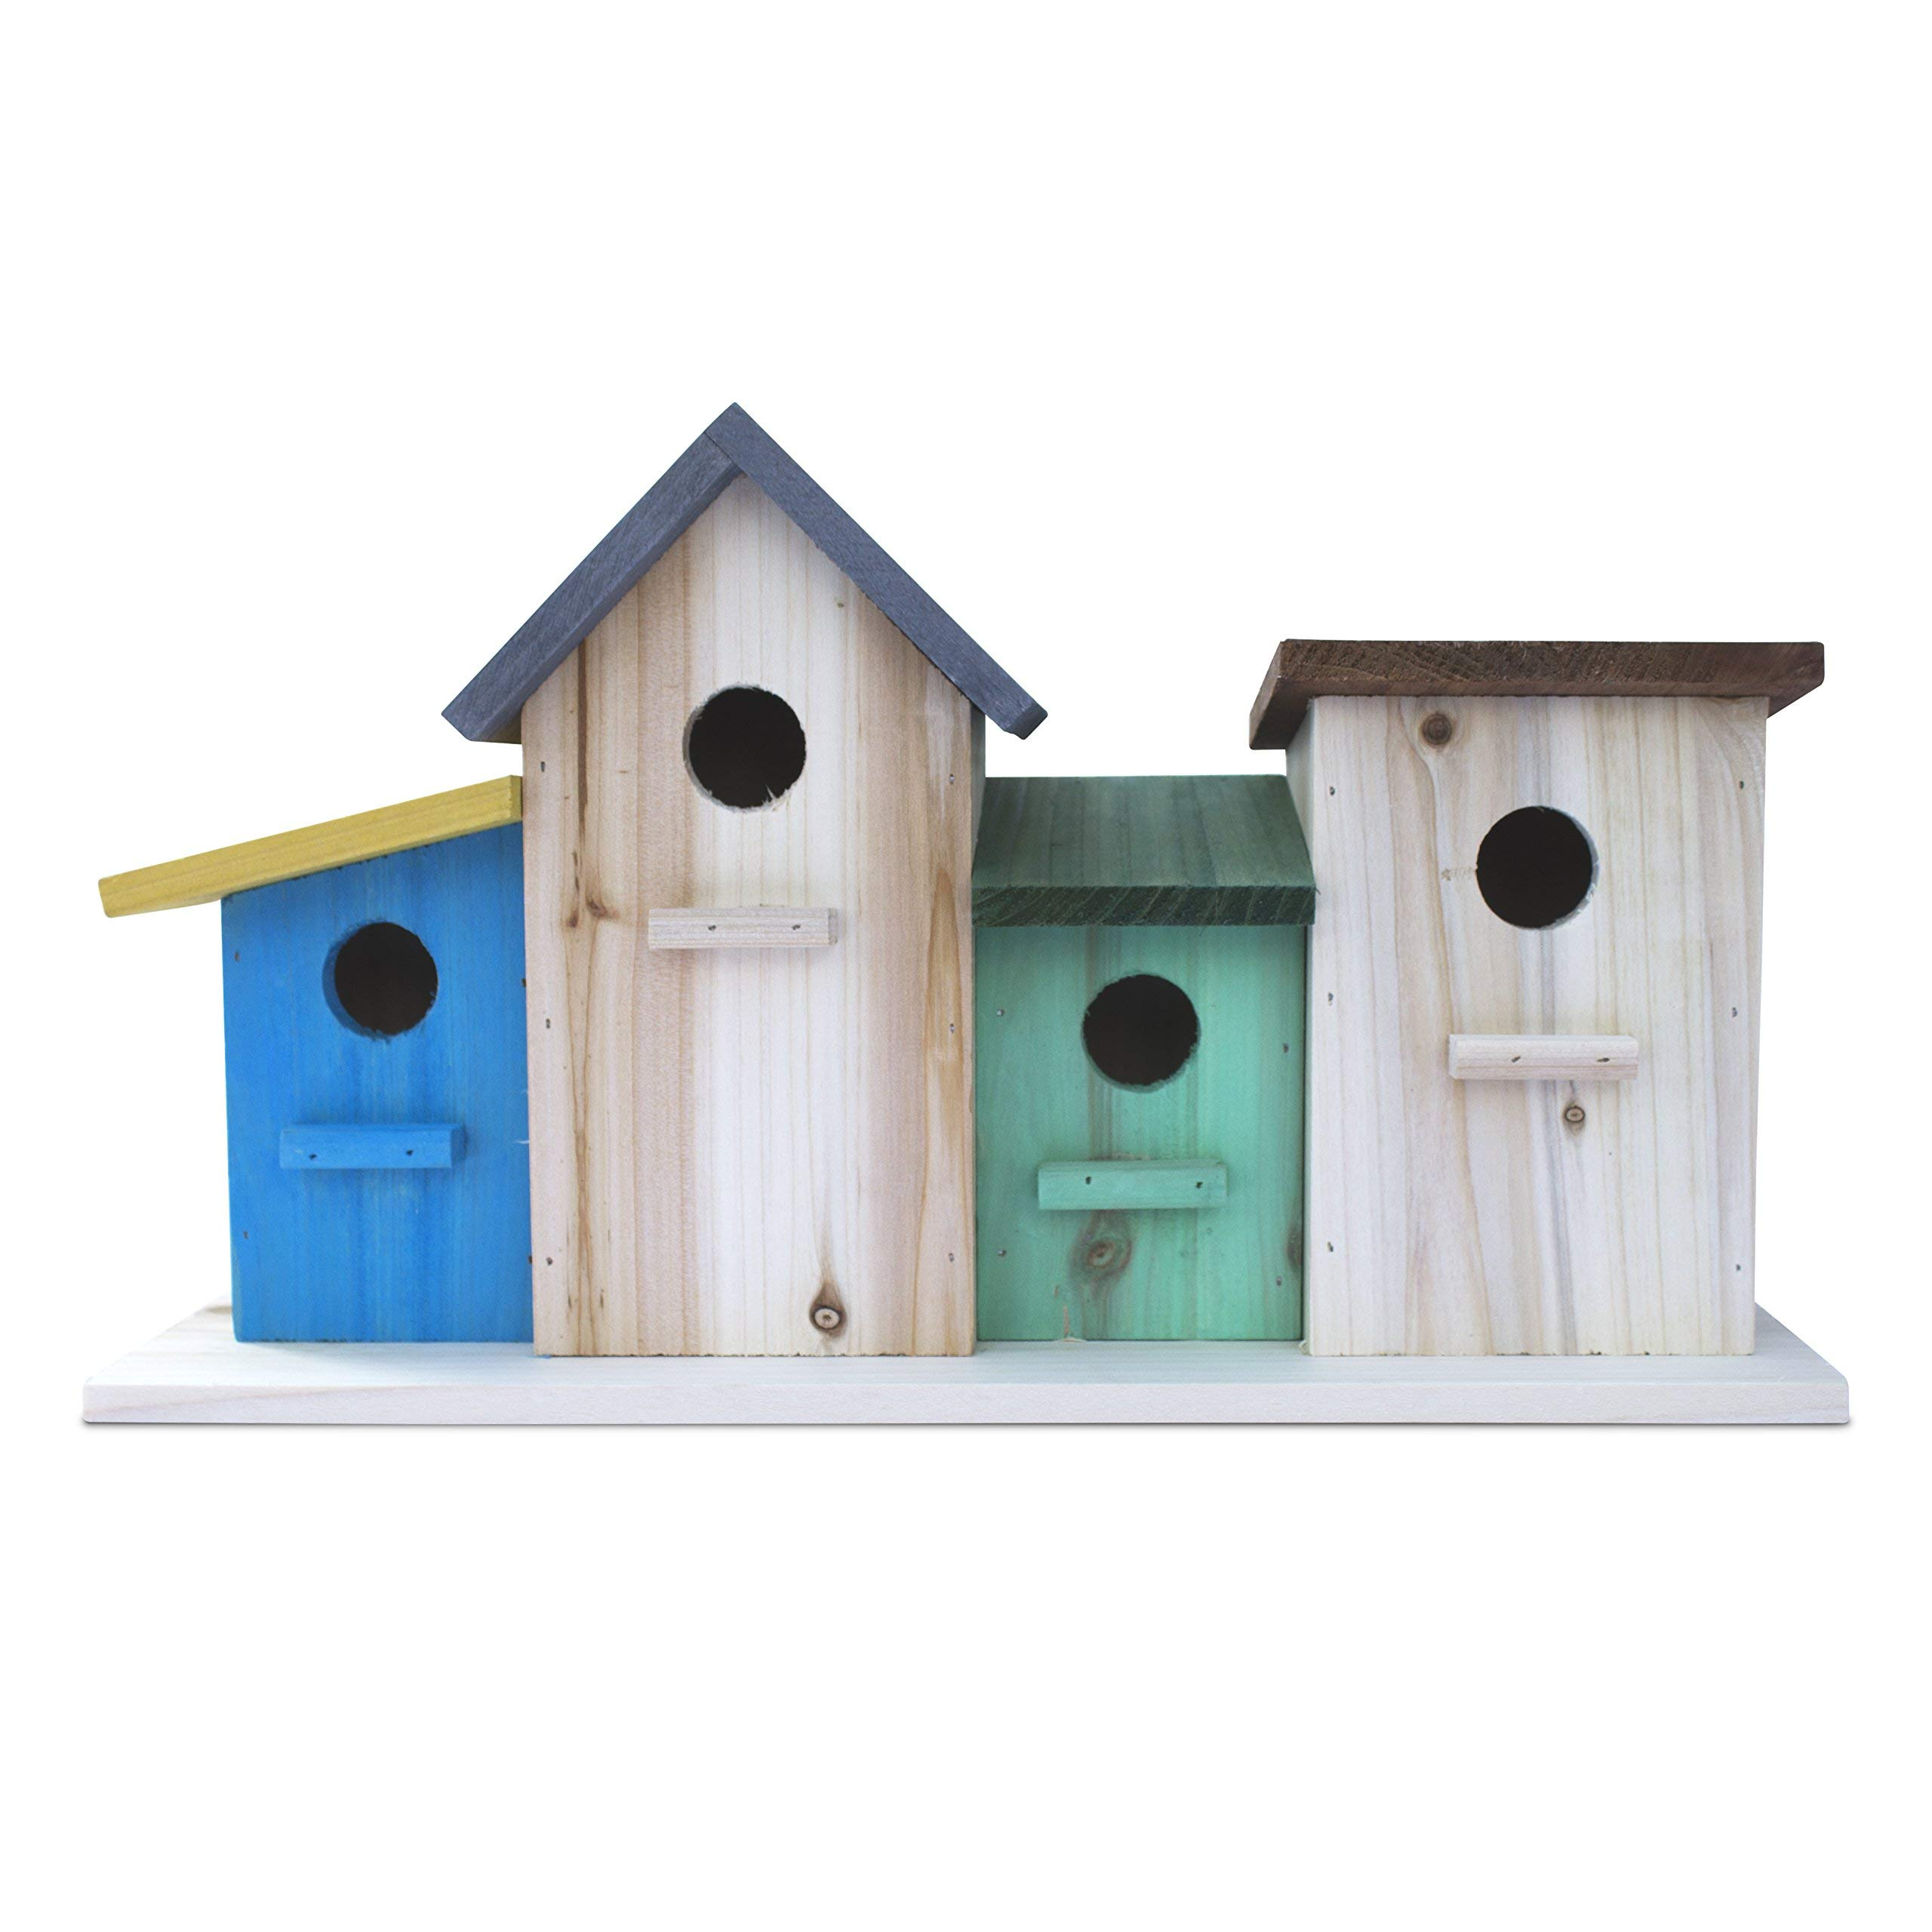 23 Bees 4 Hole Bird House for Outside/Indoors/Hanging | Kits for Children & Adults | Decorative Birdhouse & Home Decoration | Outdoors Feeder for Birds, Bluebirds, Wrens & Chickadees | All Weather by 23 Bees